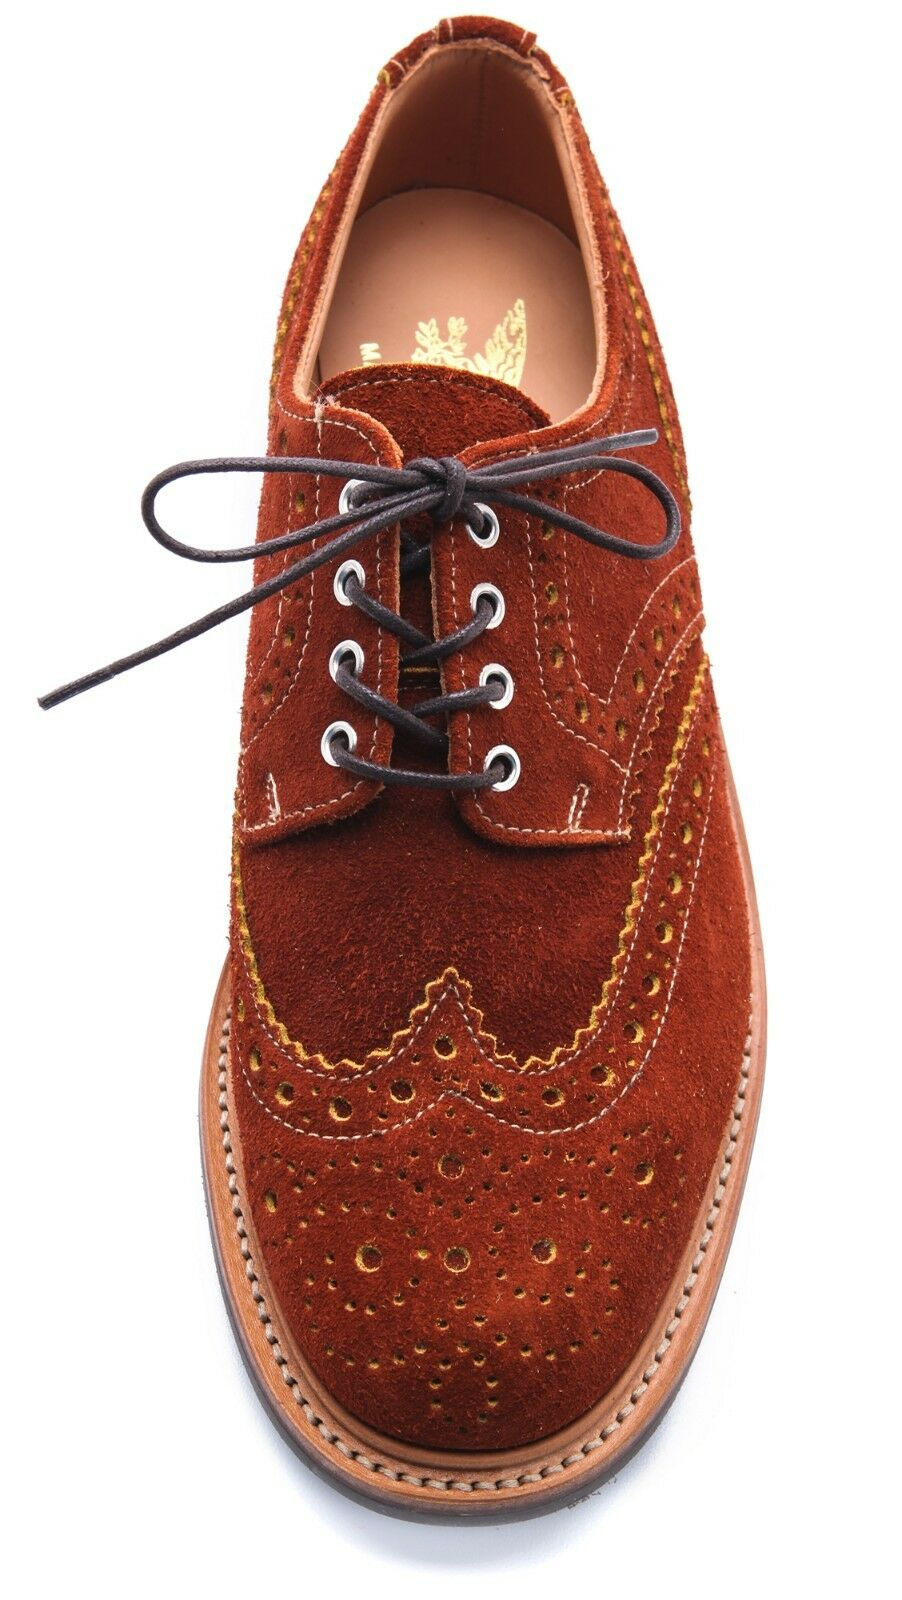 MARK MCNAIRY NEW AMSTERDAM BURNT ORANGE SUEDE COUNTRY BROGUES US 11